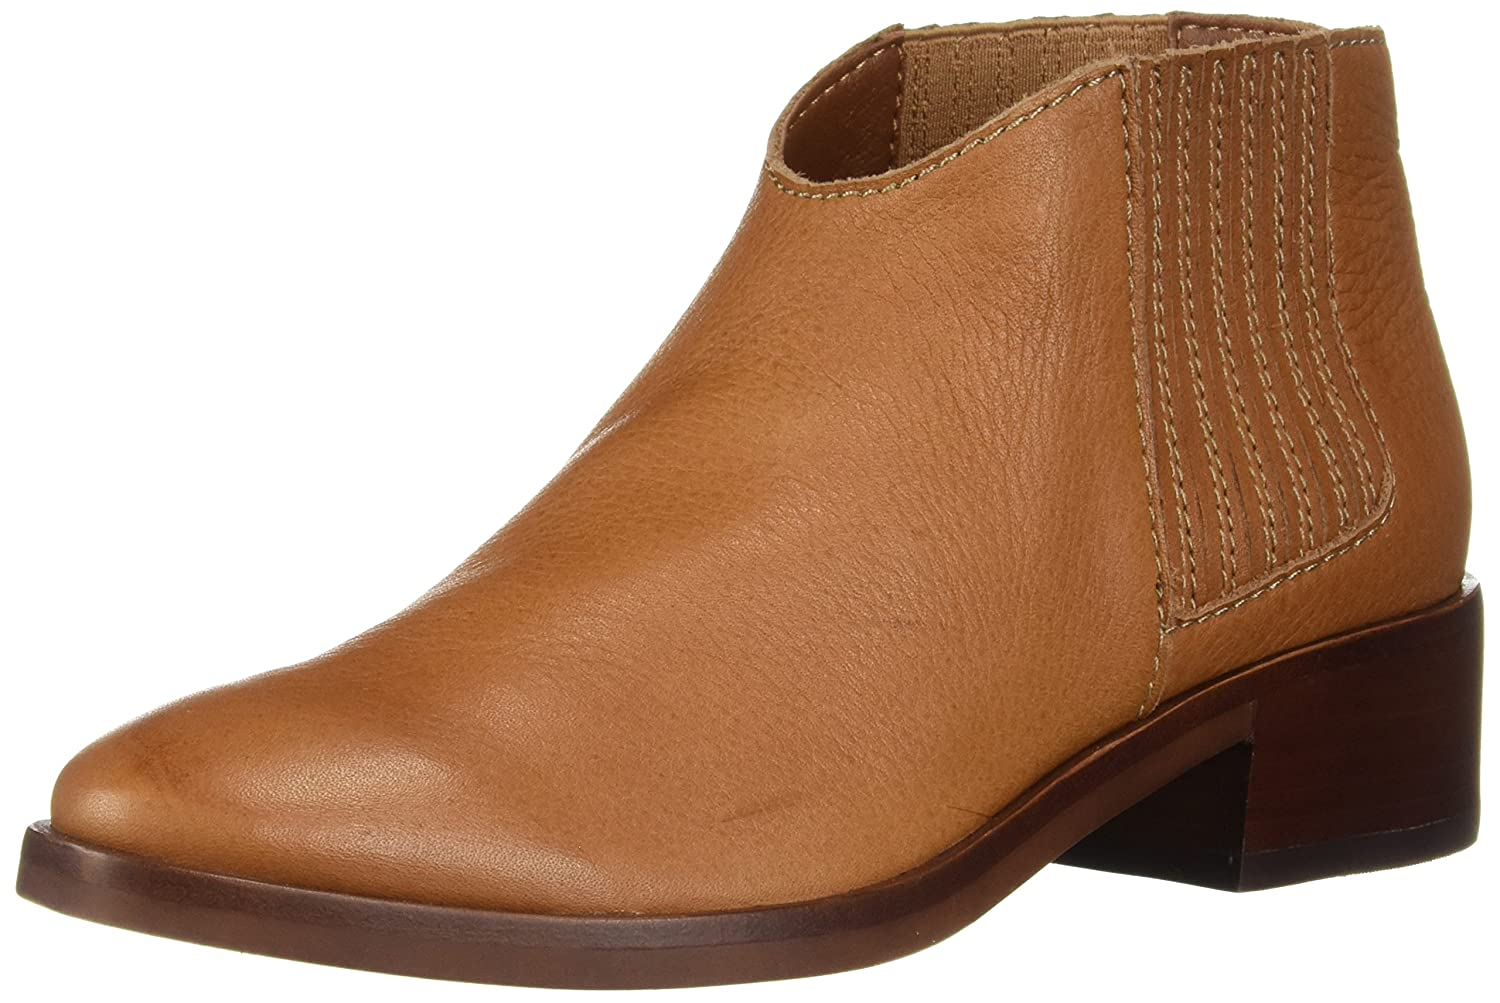 Dolce Vita Women's Towne Ankle Boot B07C9HDDH2 9 B(M) US|Brown Leather